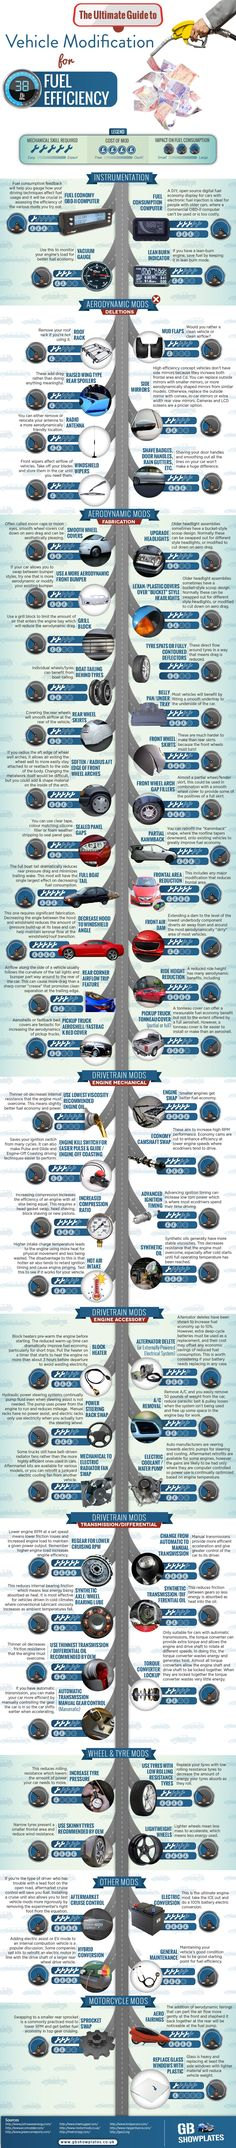 Vehicle Modification for Fuel Efficiency #infographic #Transportation #Cars